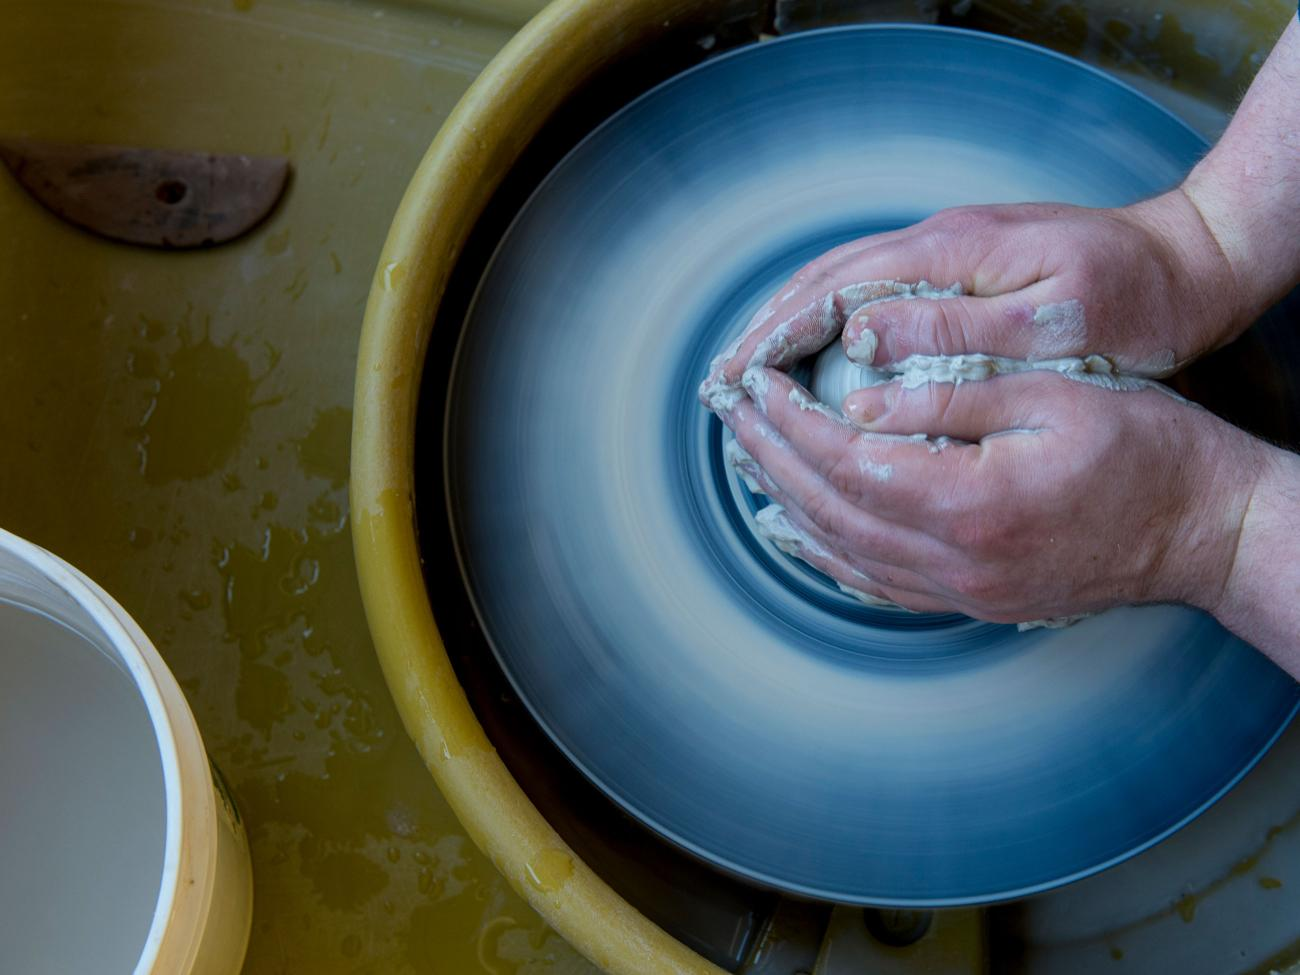 A pair of hands sculpting a clay bowl in the art studio.